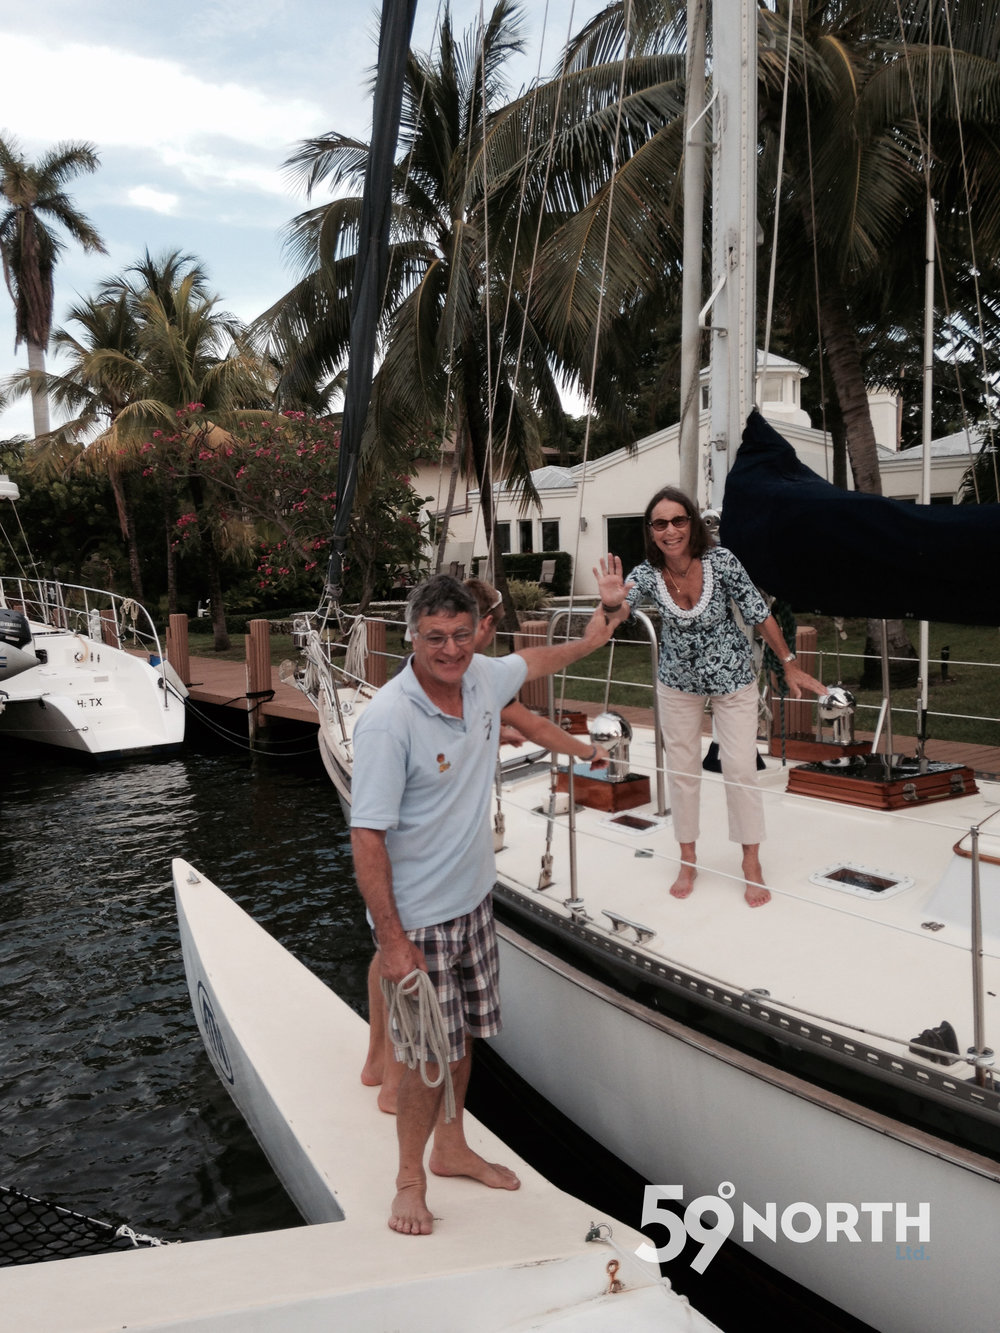 Pam waiving goodbye as we are heading out for a sunset sail on Etienne's trimaran in Ft. Lauderdale. May 2016